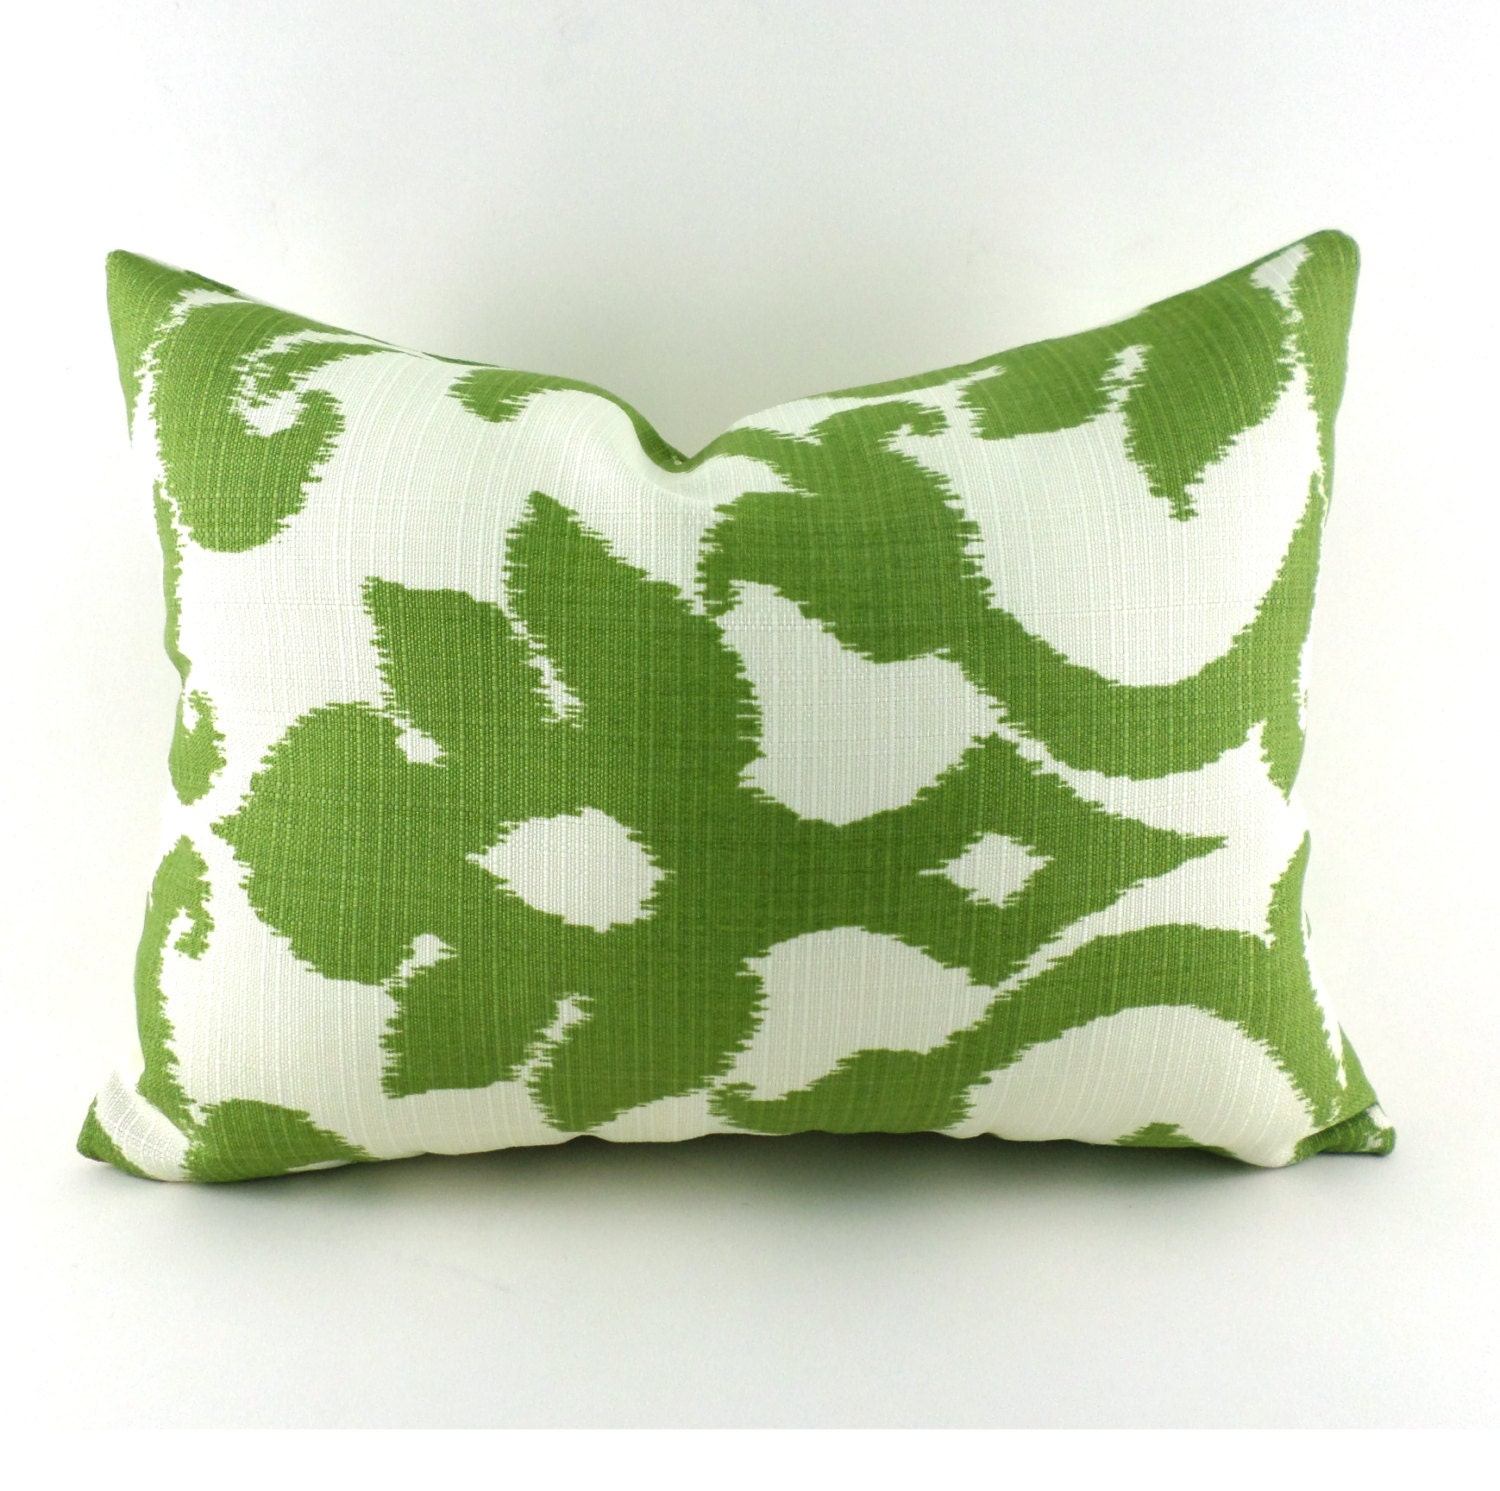 Decorative Outdoor Lumbar Pillows : 60% CLEARANCE SALE Outdoor Lumbar Pillow Cover Decorative